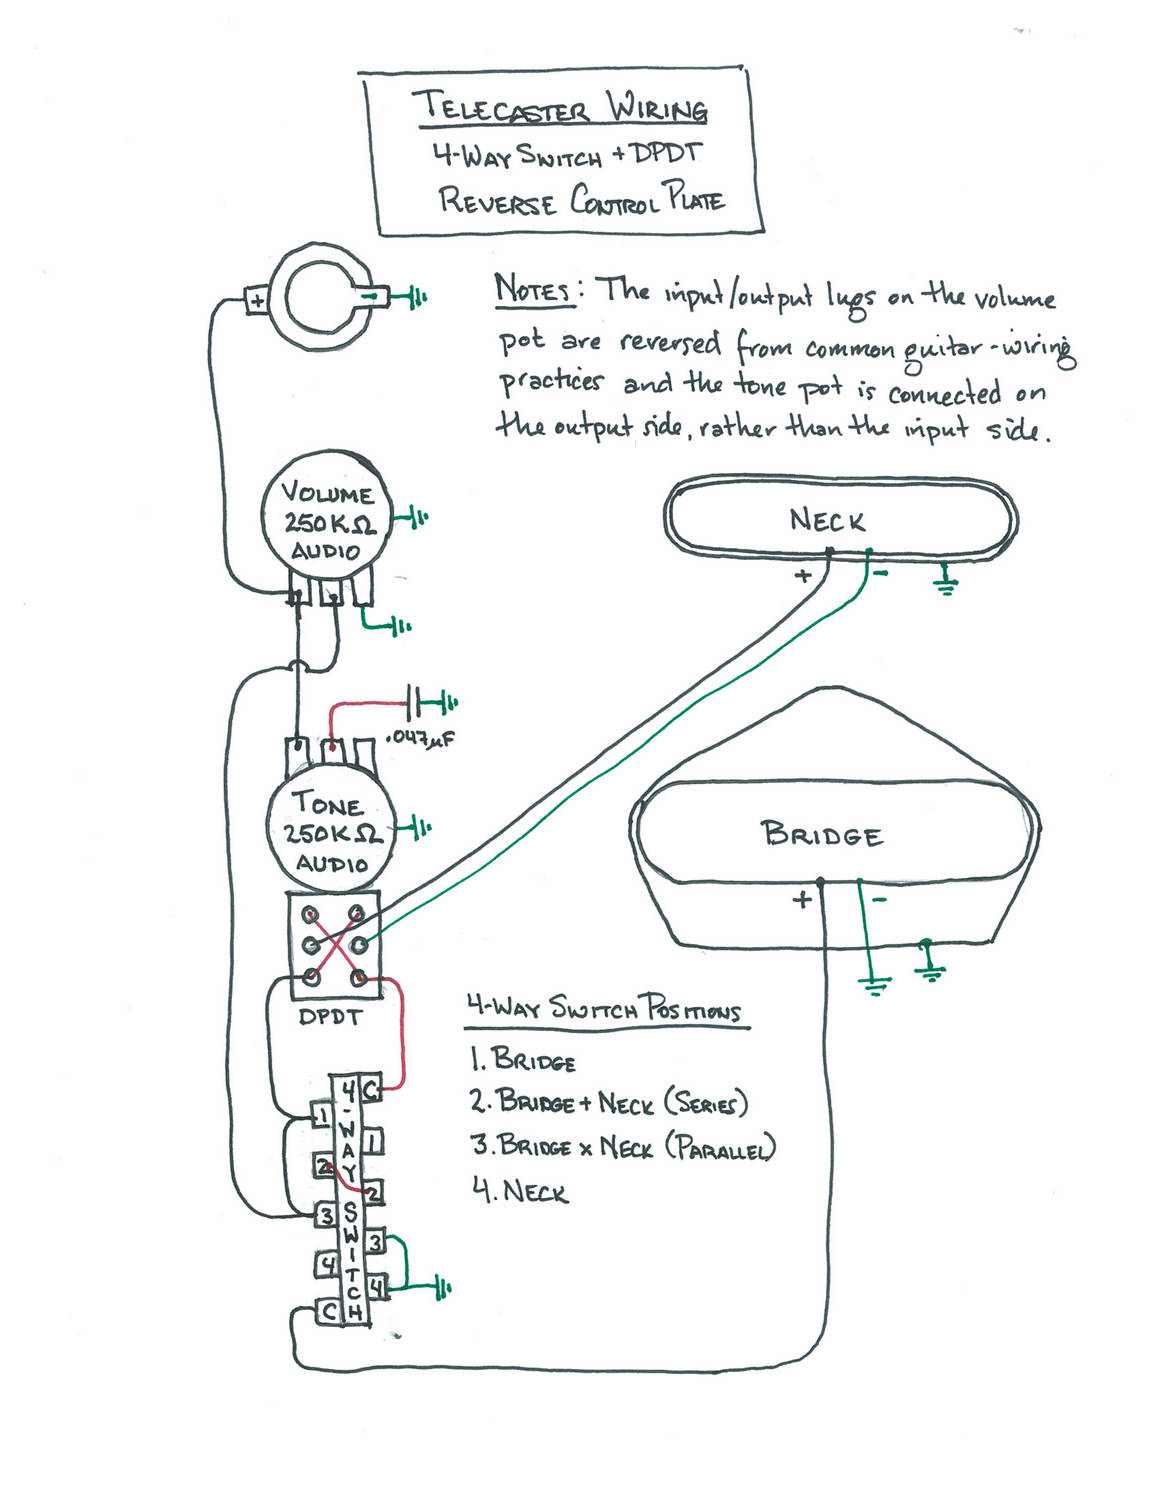 Wiring Diagram Free Download 2 Humbucker 5 Way Switch Trusted Ibanez Guitar Diagrams 3 Telecaster House